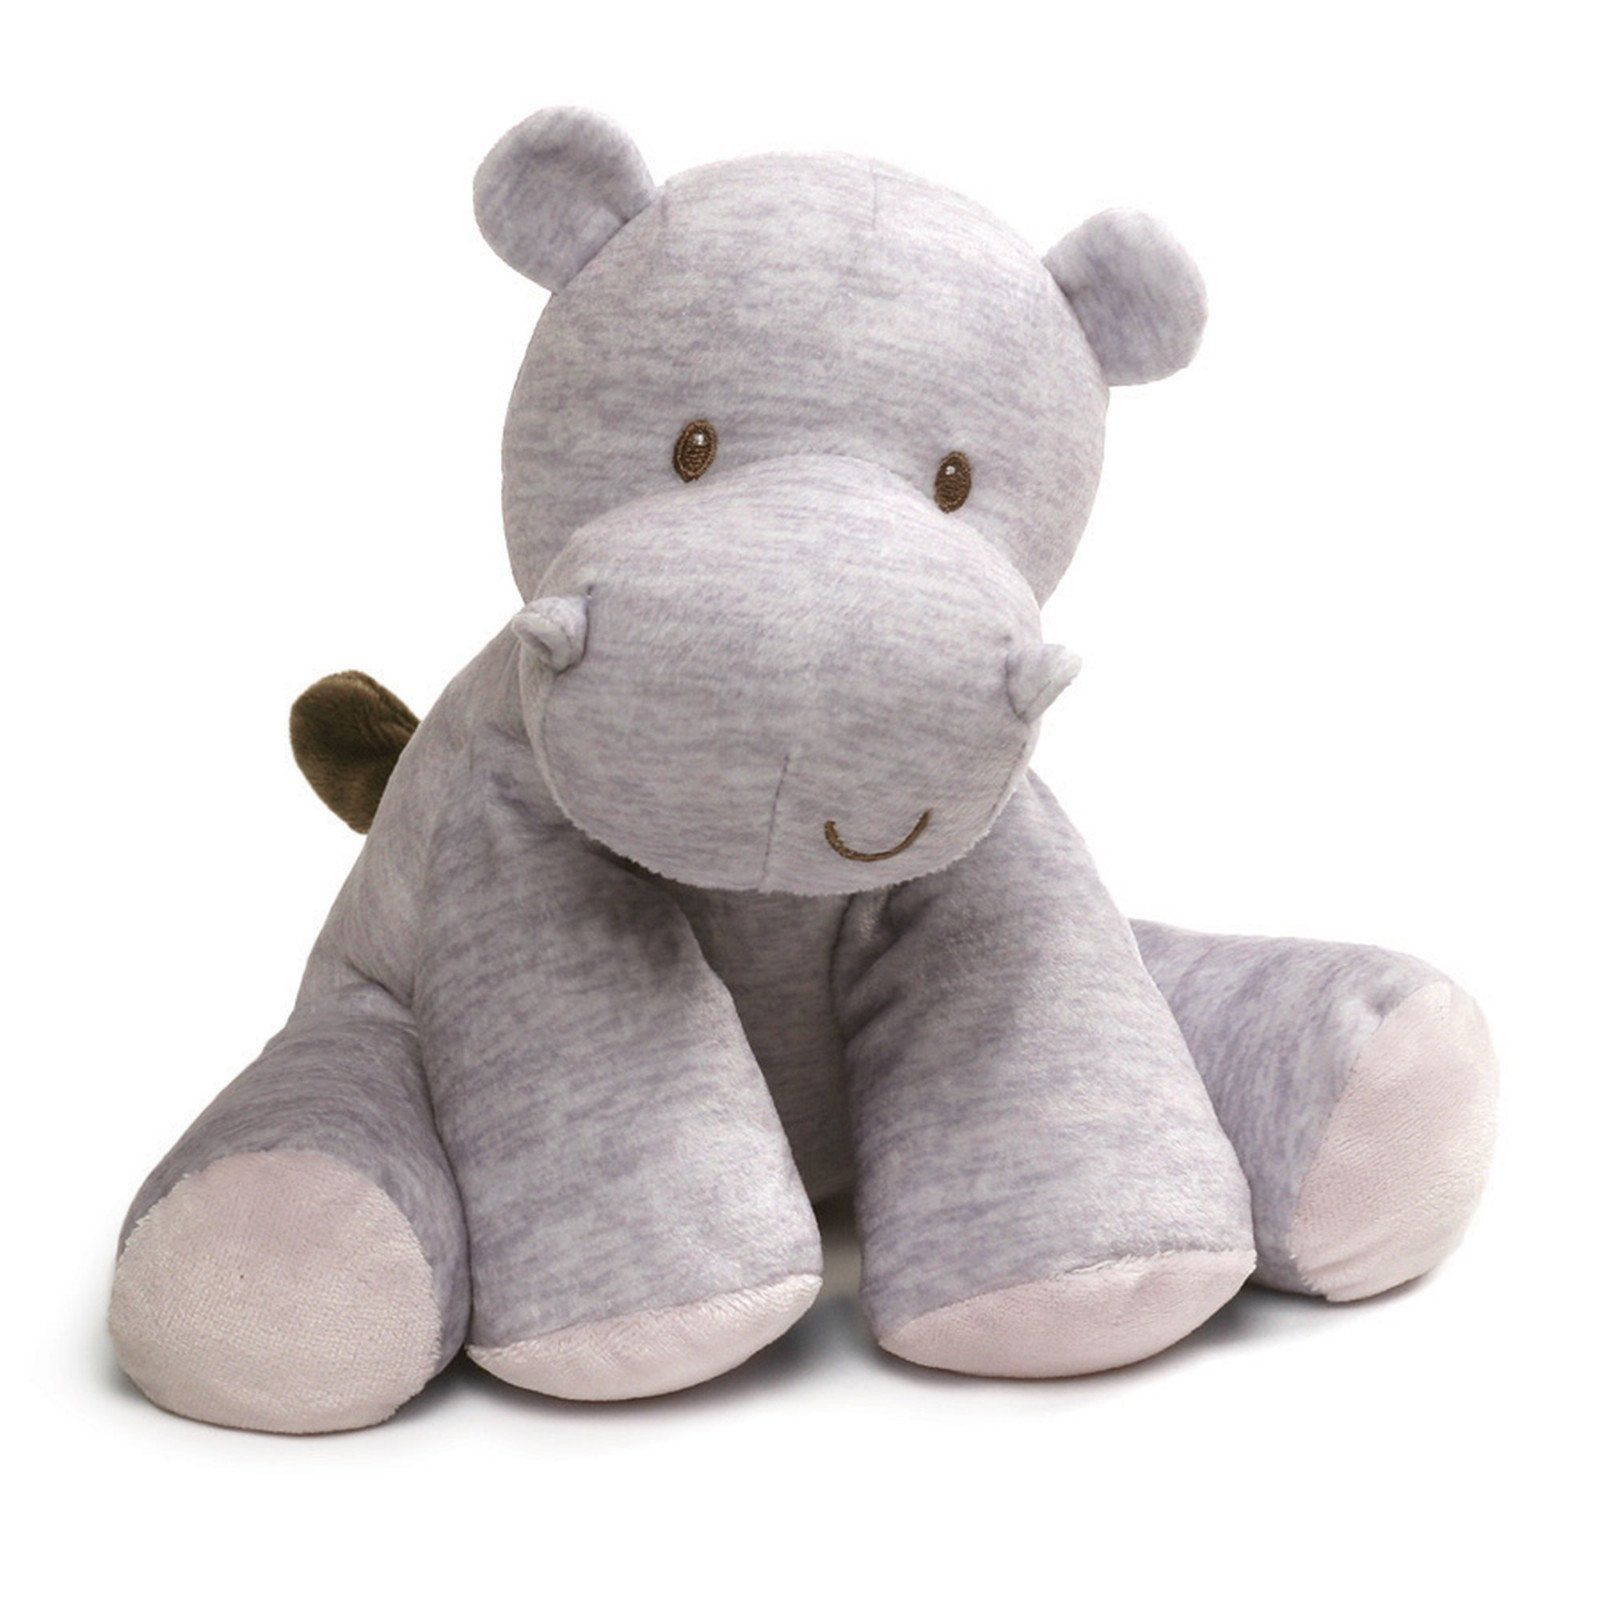 Hippo - I want a Hippopotamus for Christmas | Hippopotamus and Products